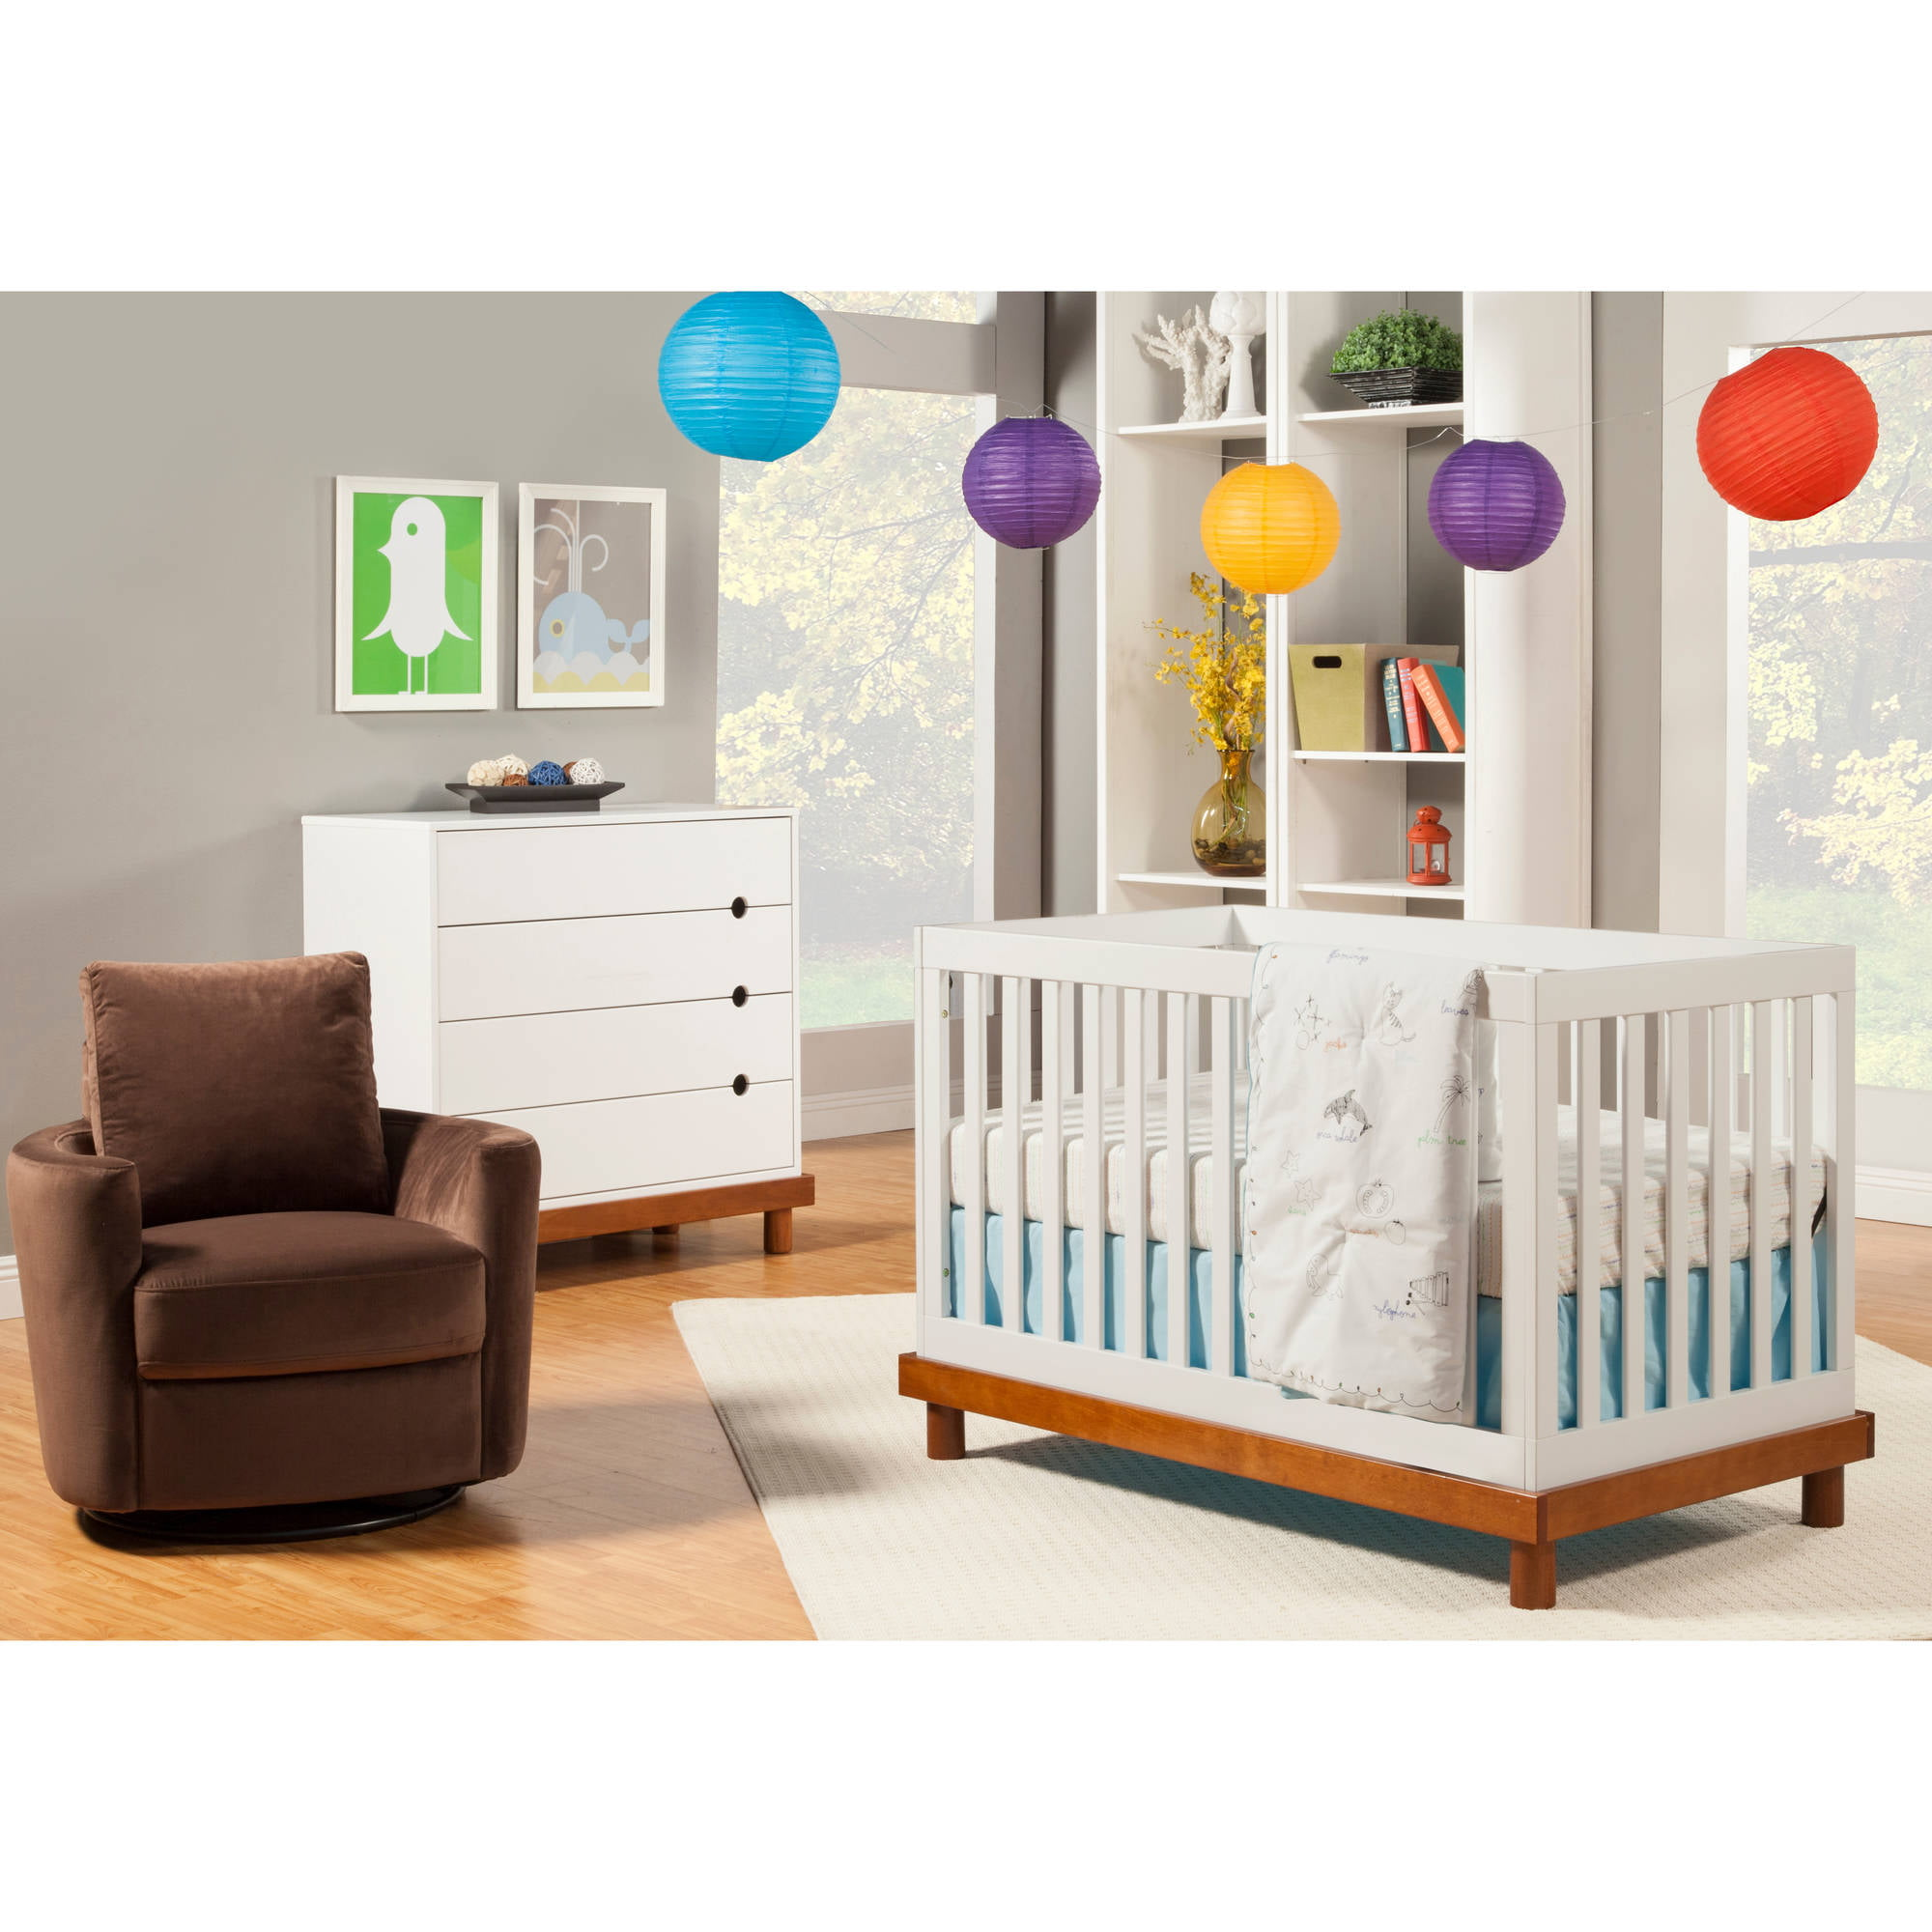 baby mod olivia 3-in-1 crib white and cherry - walmart